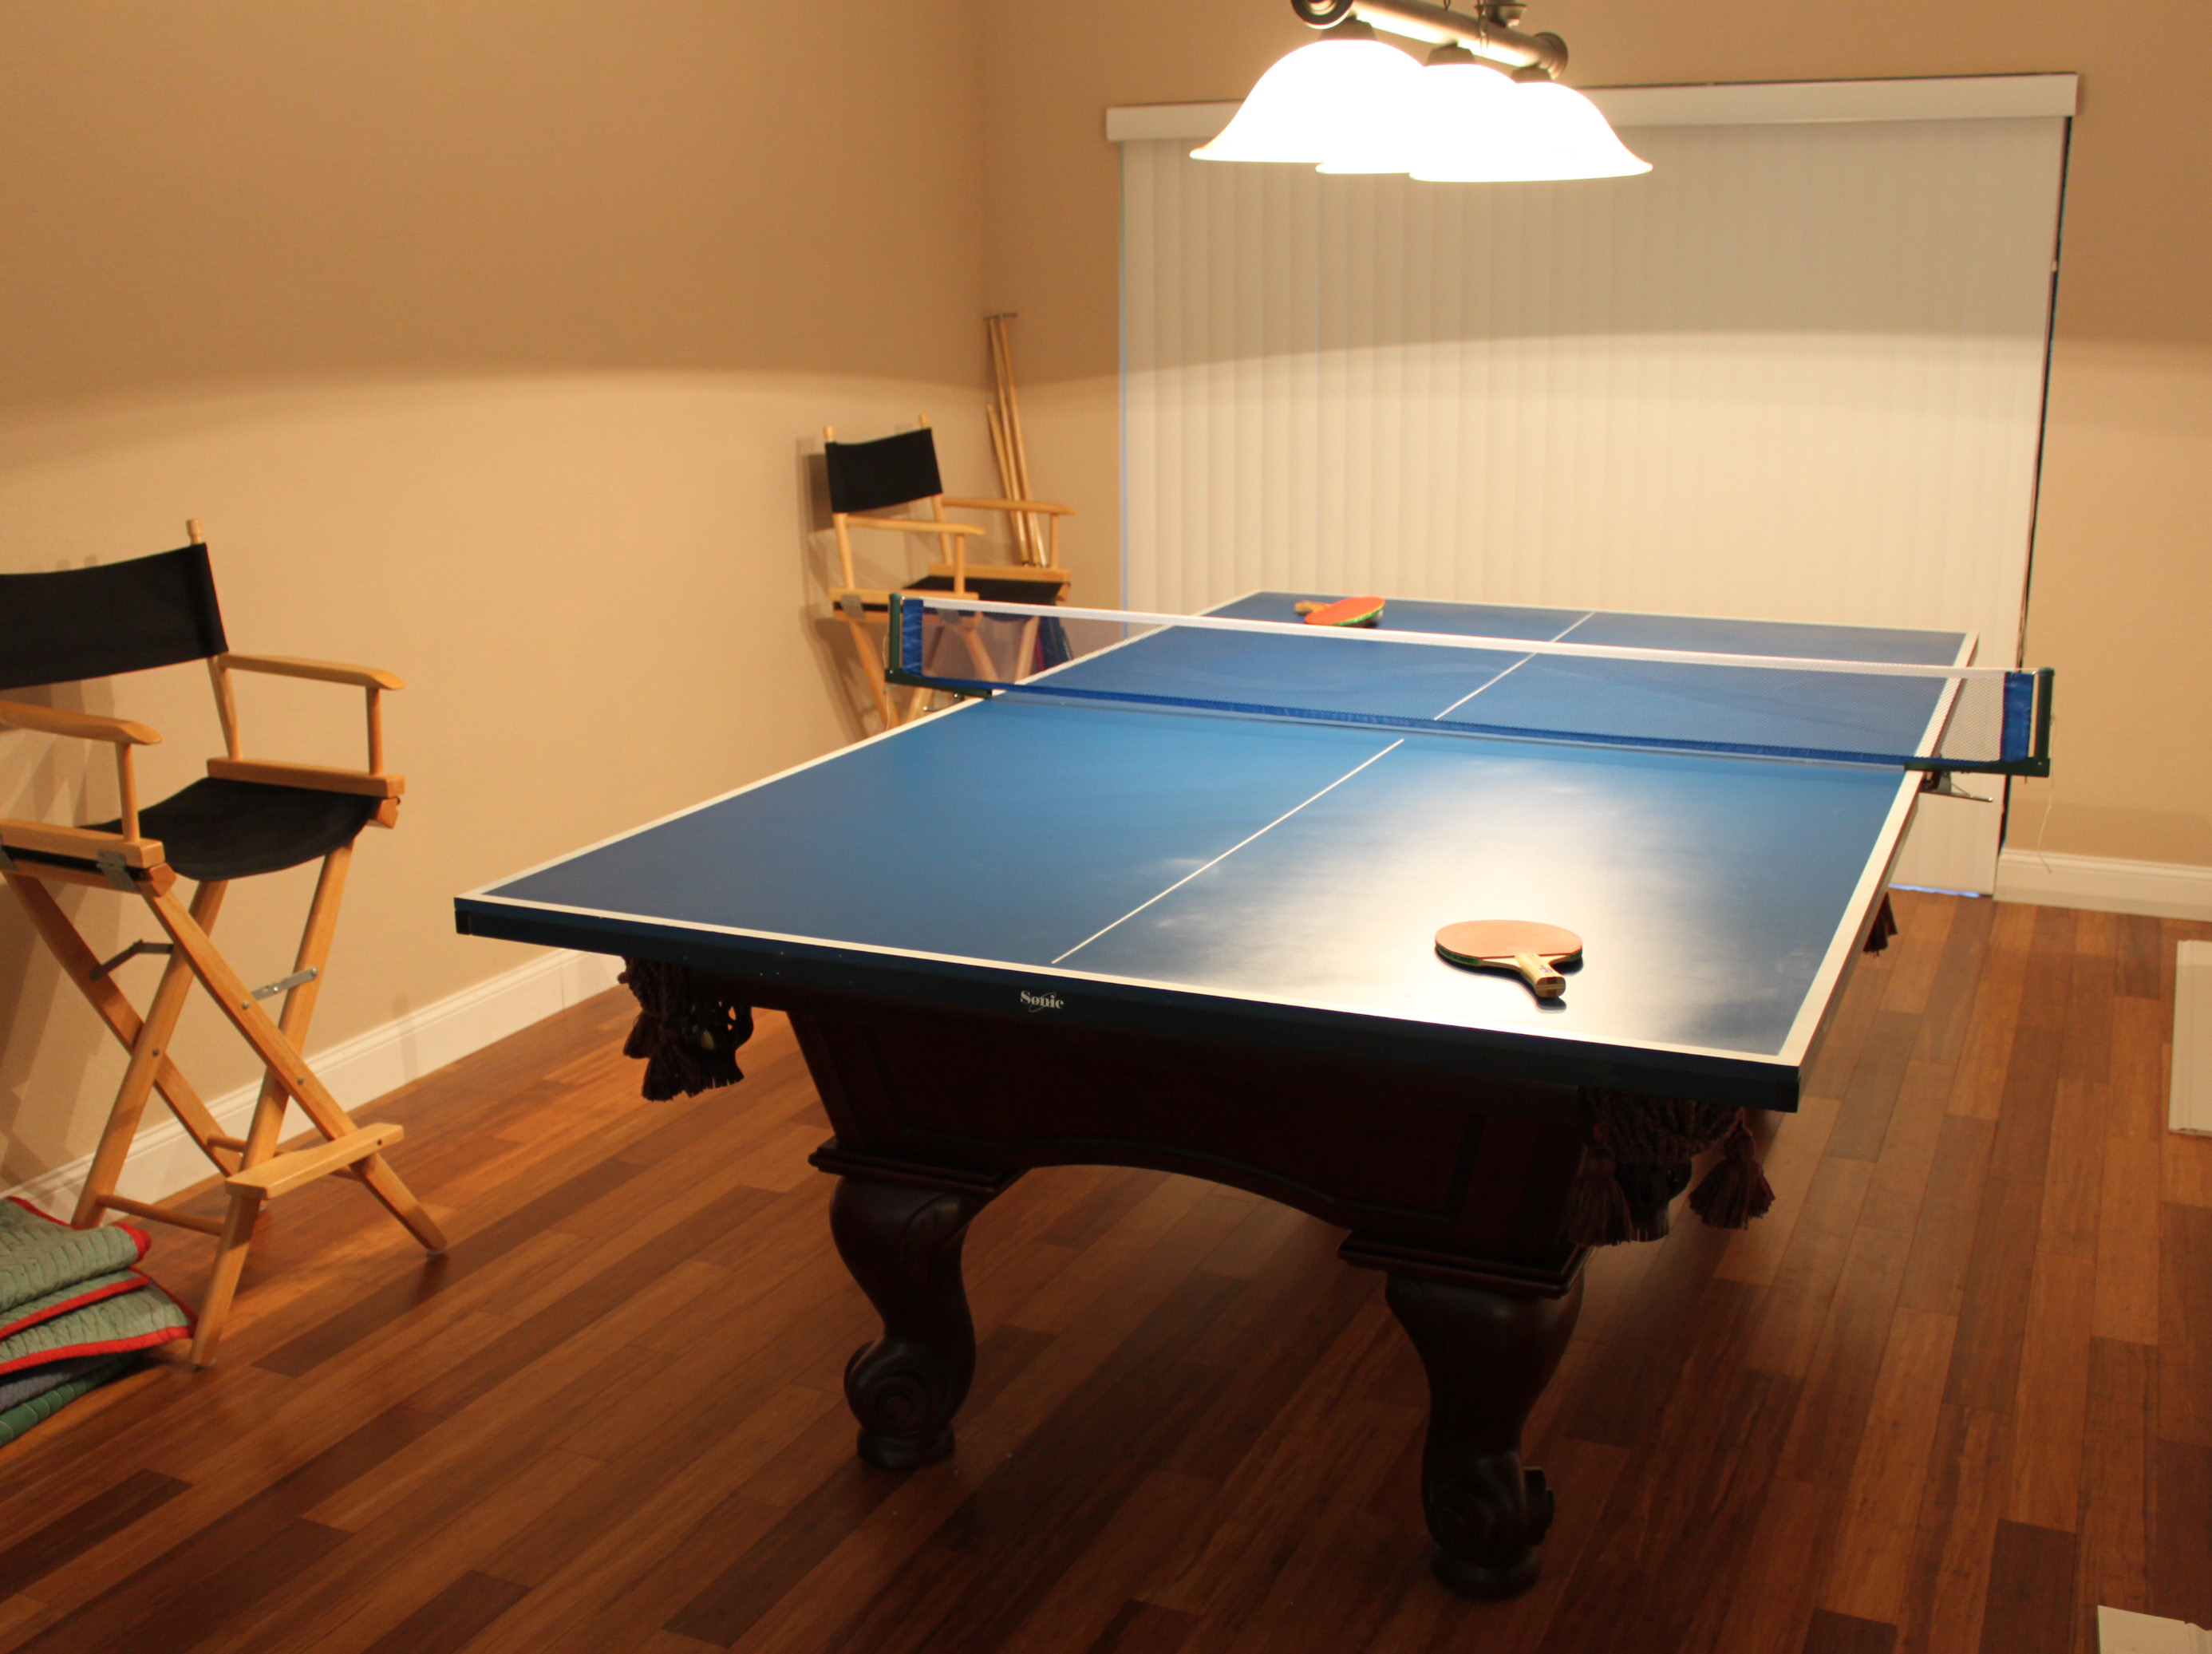 ... Ping Pong Table Topper By The Billiards Table Huebsch House Chronicles  ...